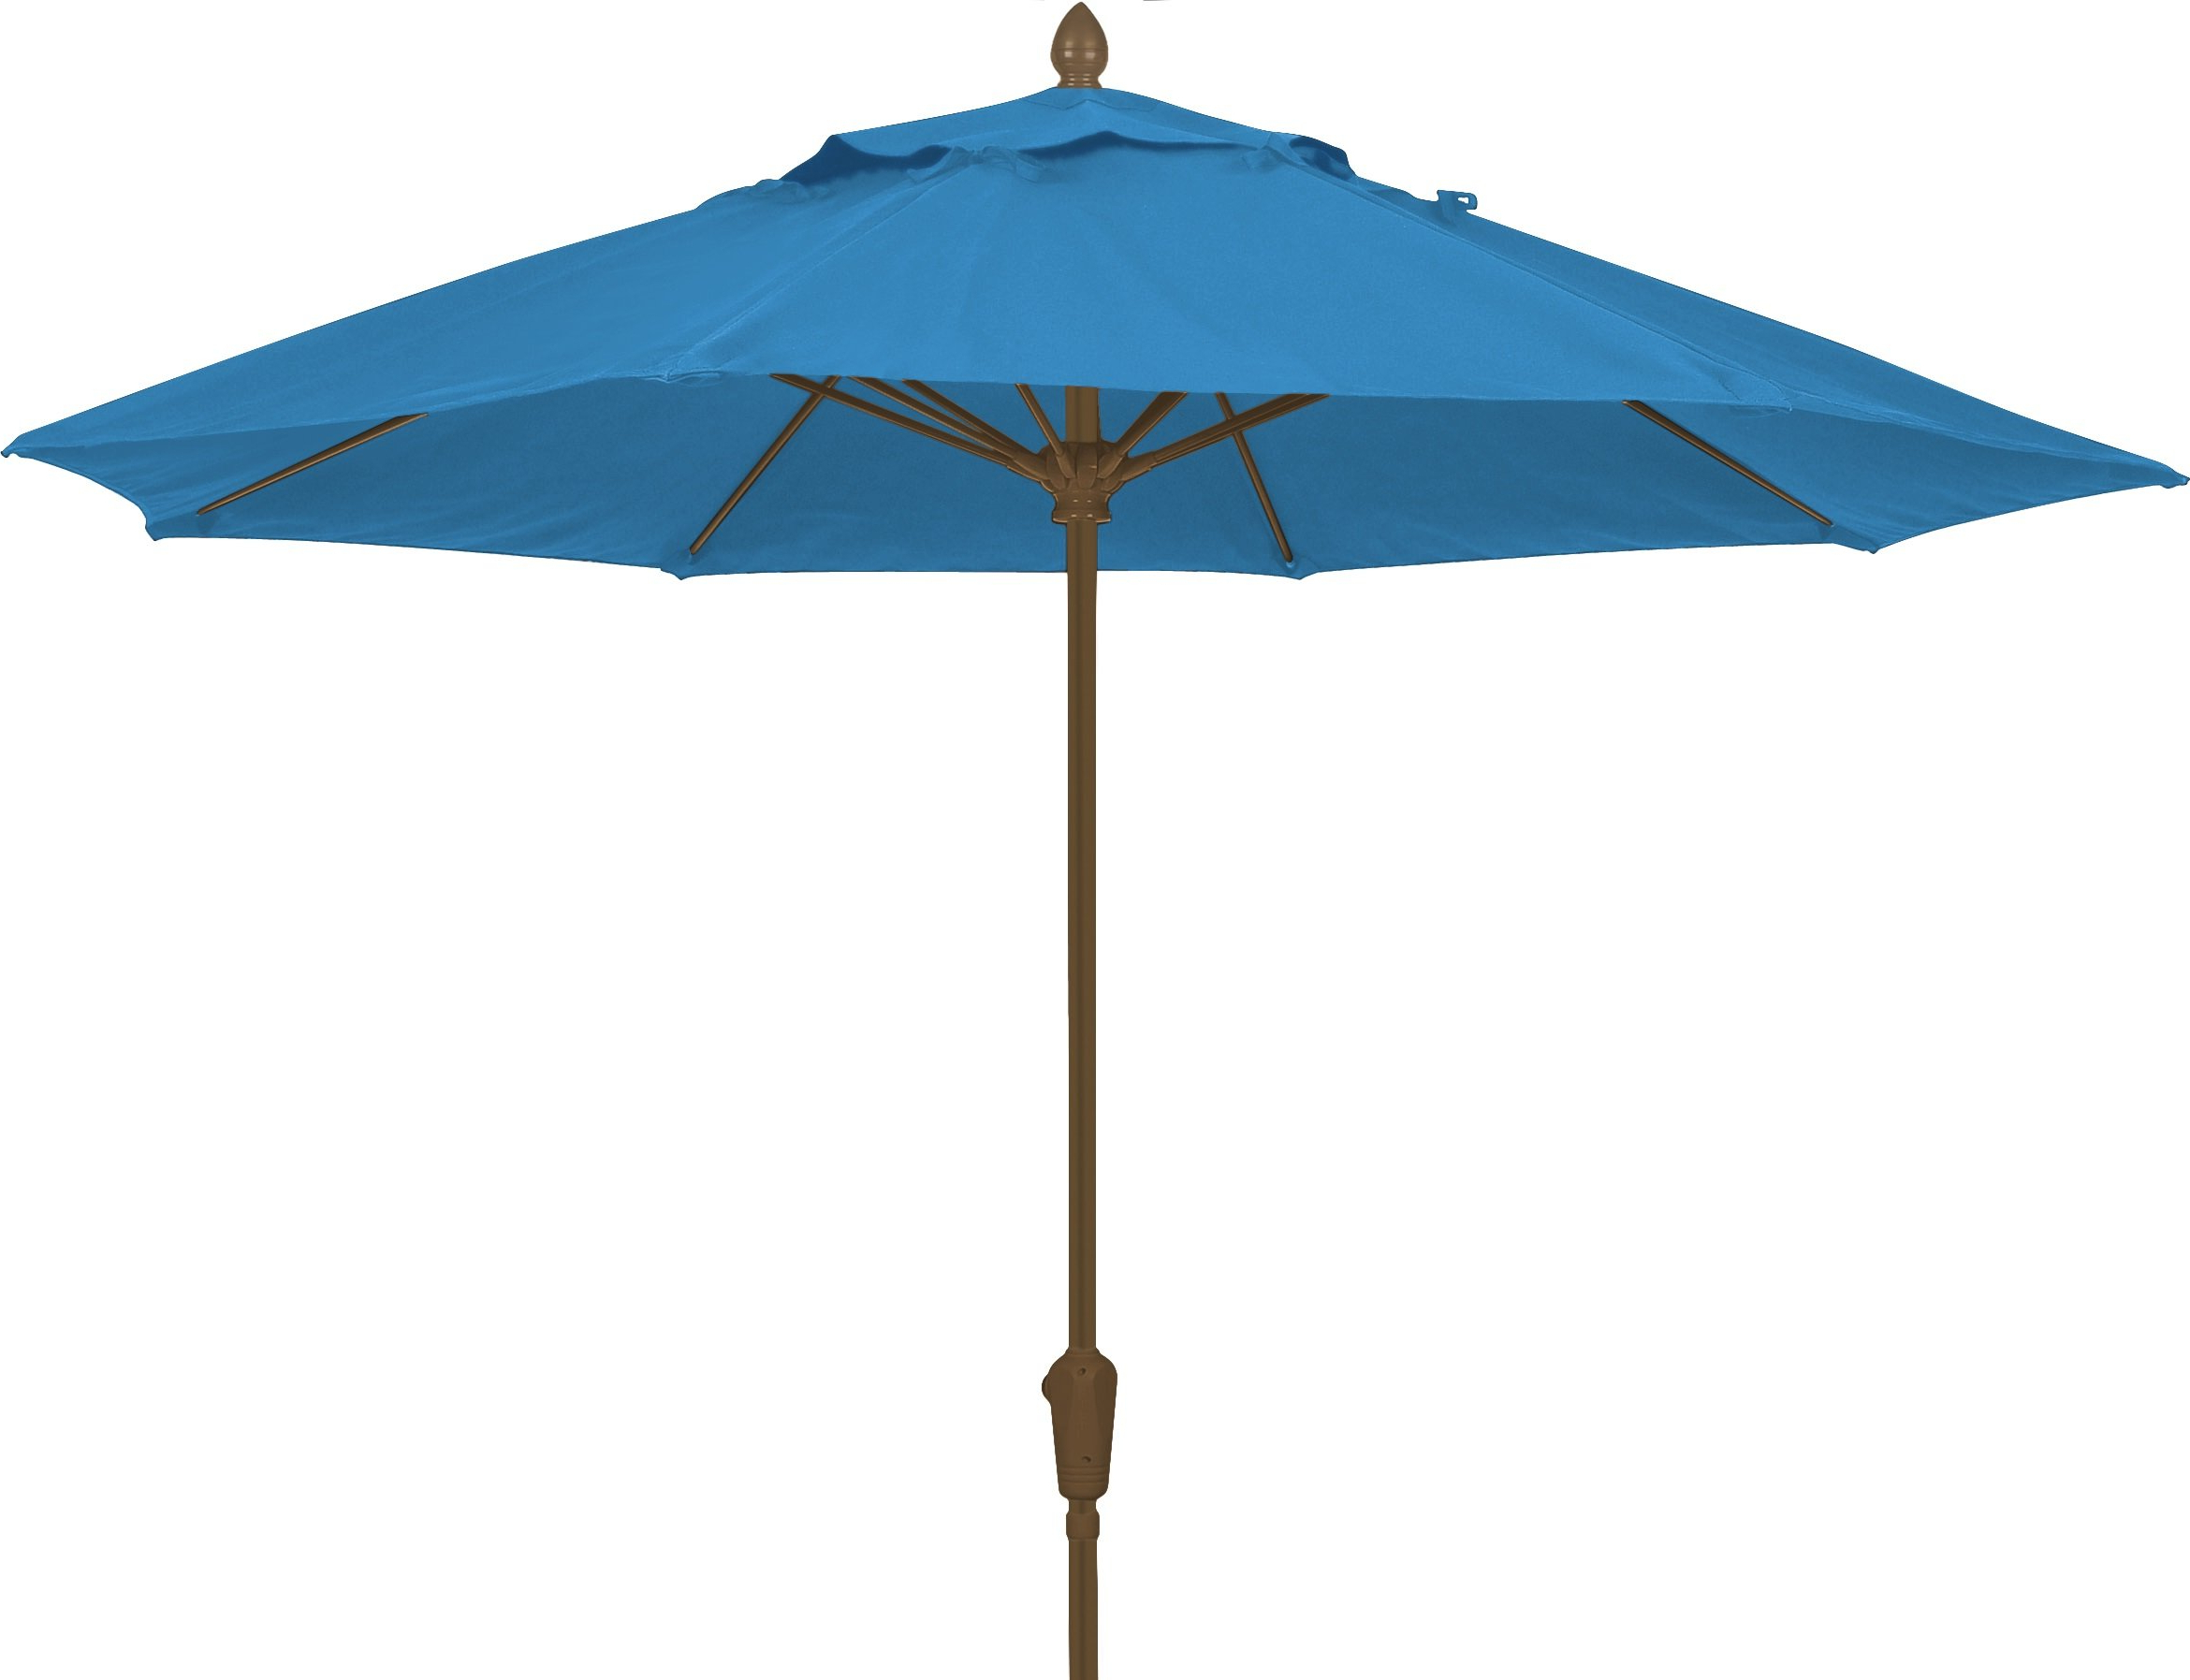 Trendy Prestige 9' Market Sunbrella Umbrella Regarding Mucci Madilyn Market Sunbrella Umbrellas (View 12 of 20)